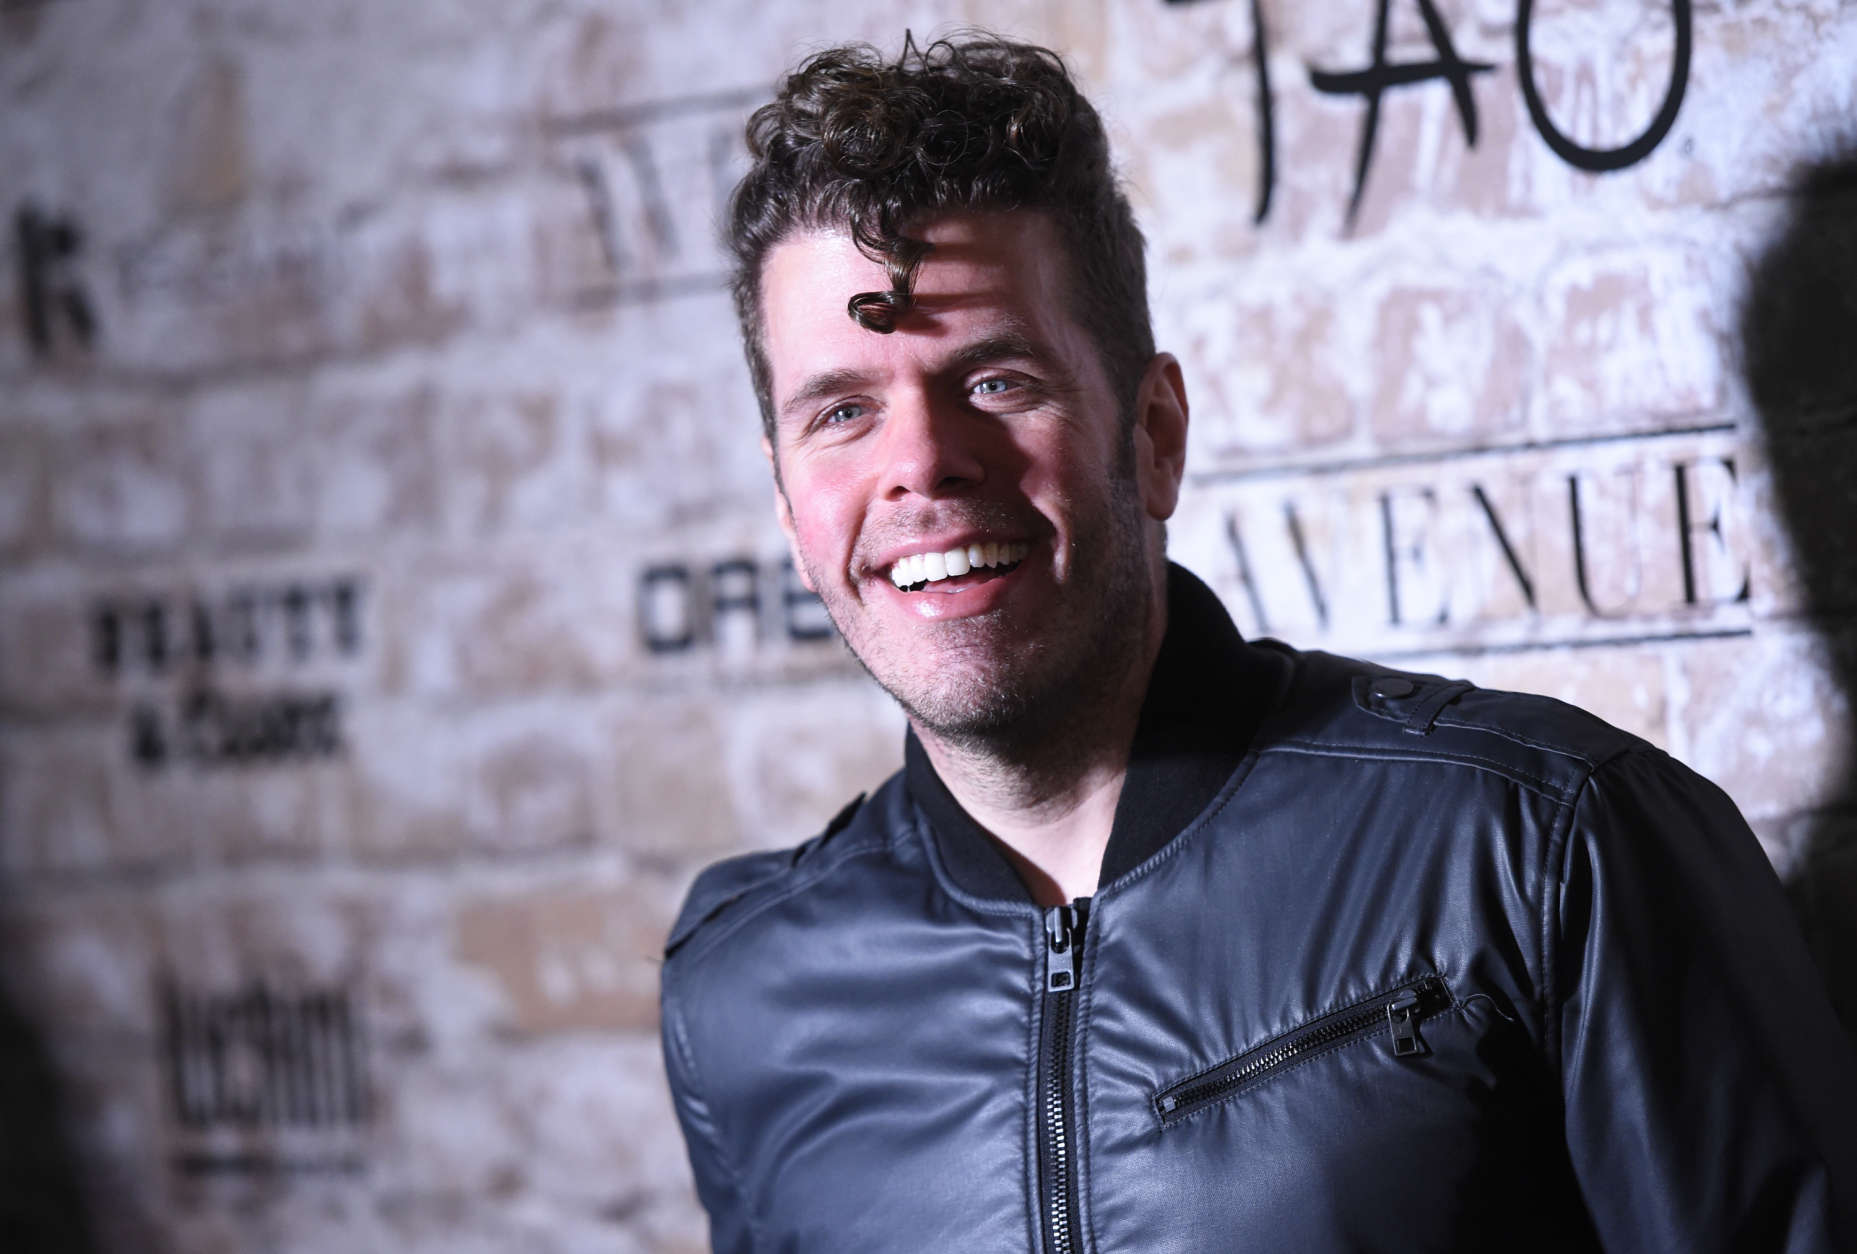 Gossip blogger Perez Hilton is 44 on March 23. (Photo by Chris Pizzello/Invision/AP)